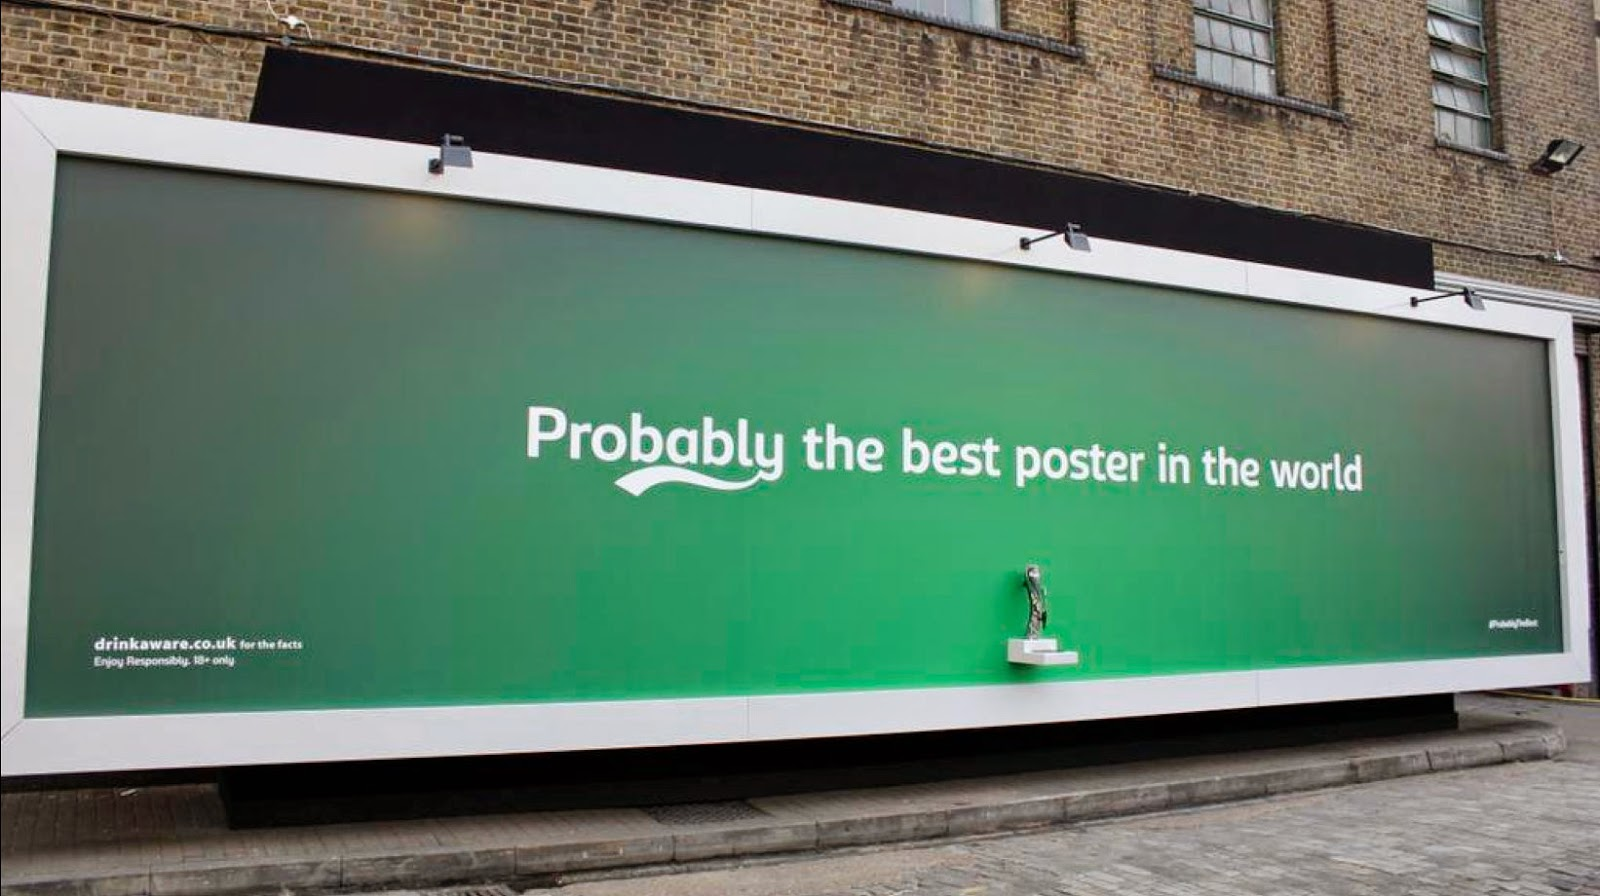 Carlsberg - Probably the best poster in the world